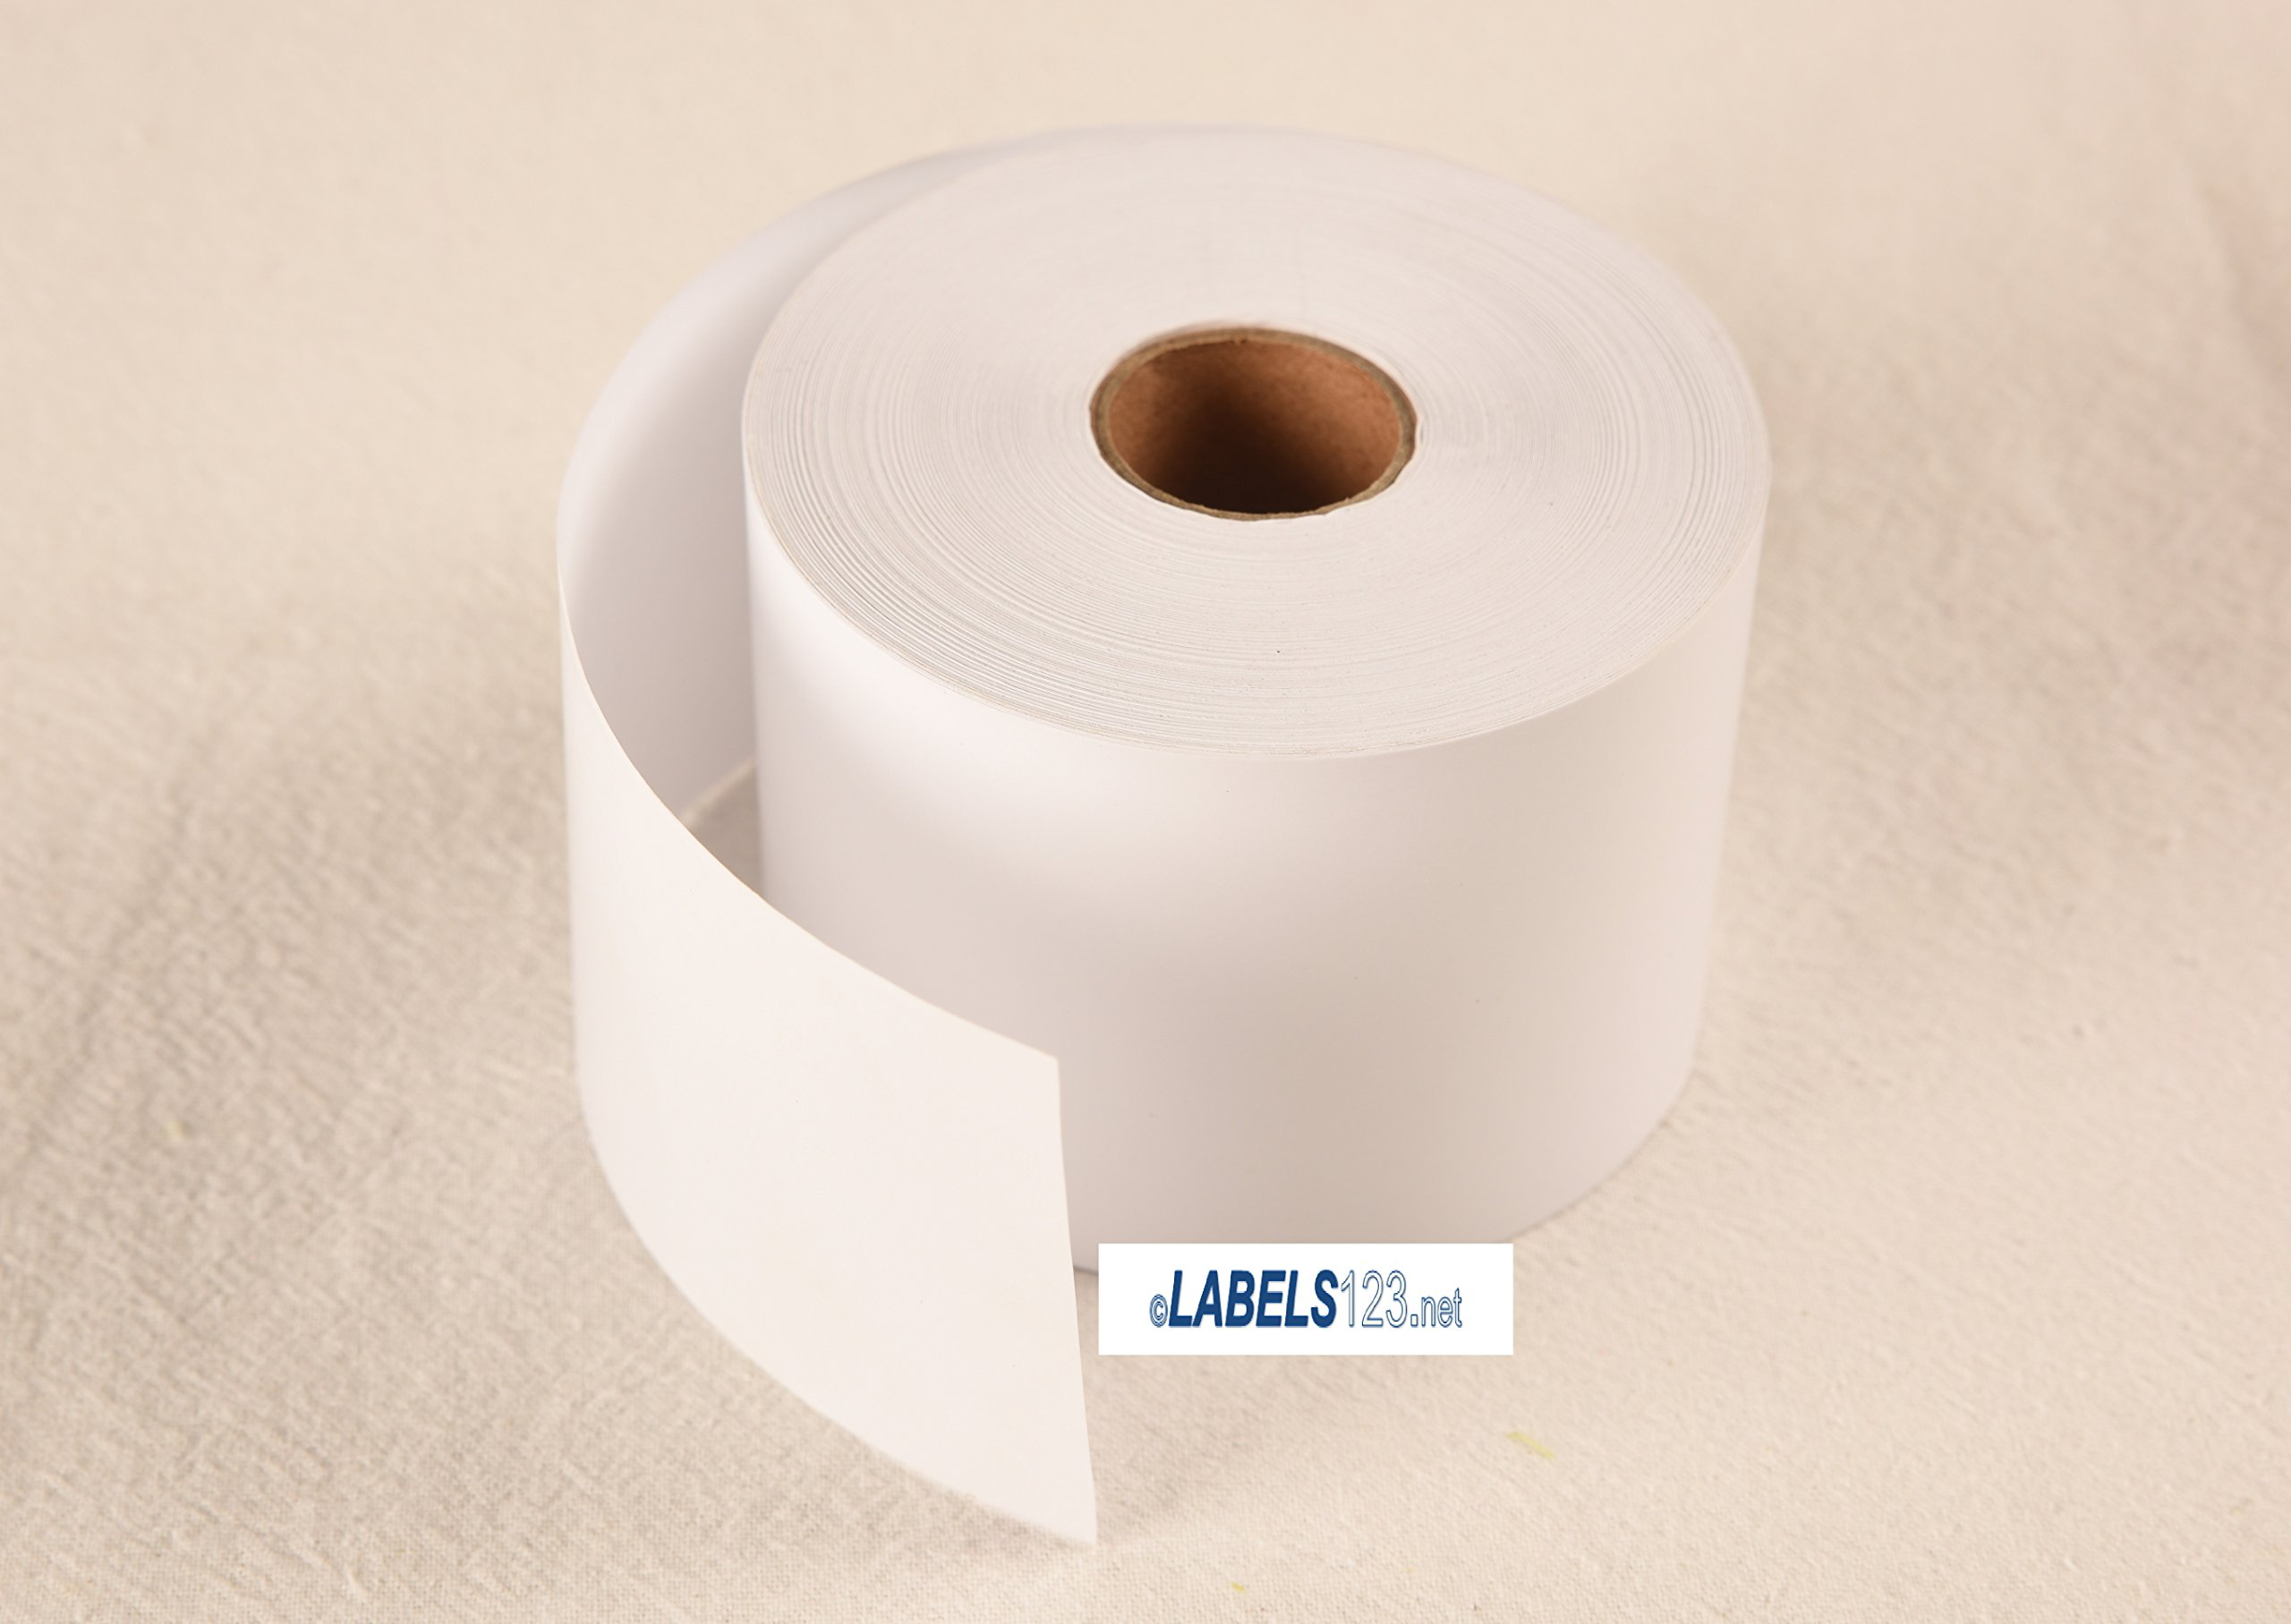 2 Rolls.. Dymo 30270 Compatible Non-adhesive Continuous Receipt Paper Rolls for Dymo Labelwriters 330 400 450 Twin Turbo Duo 4xl (Each Roll: 2-7/16 Inch X 300 Feet)